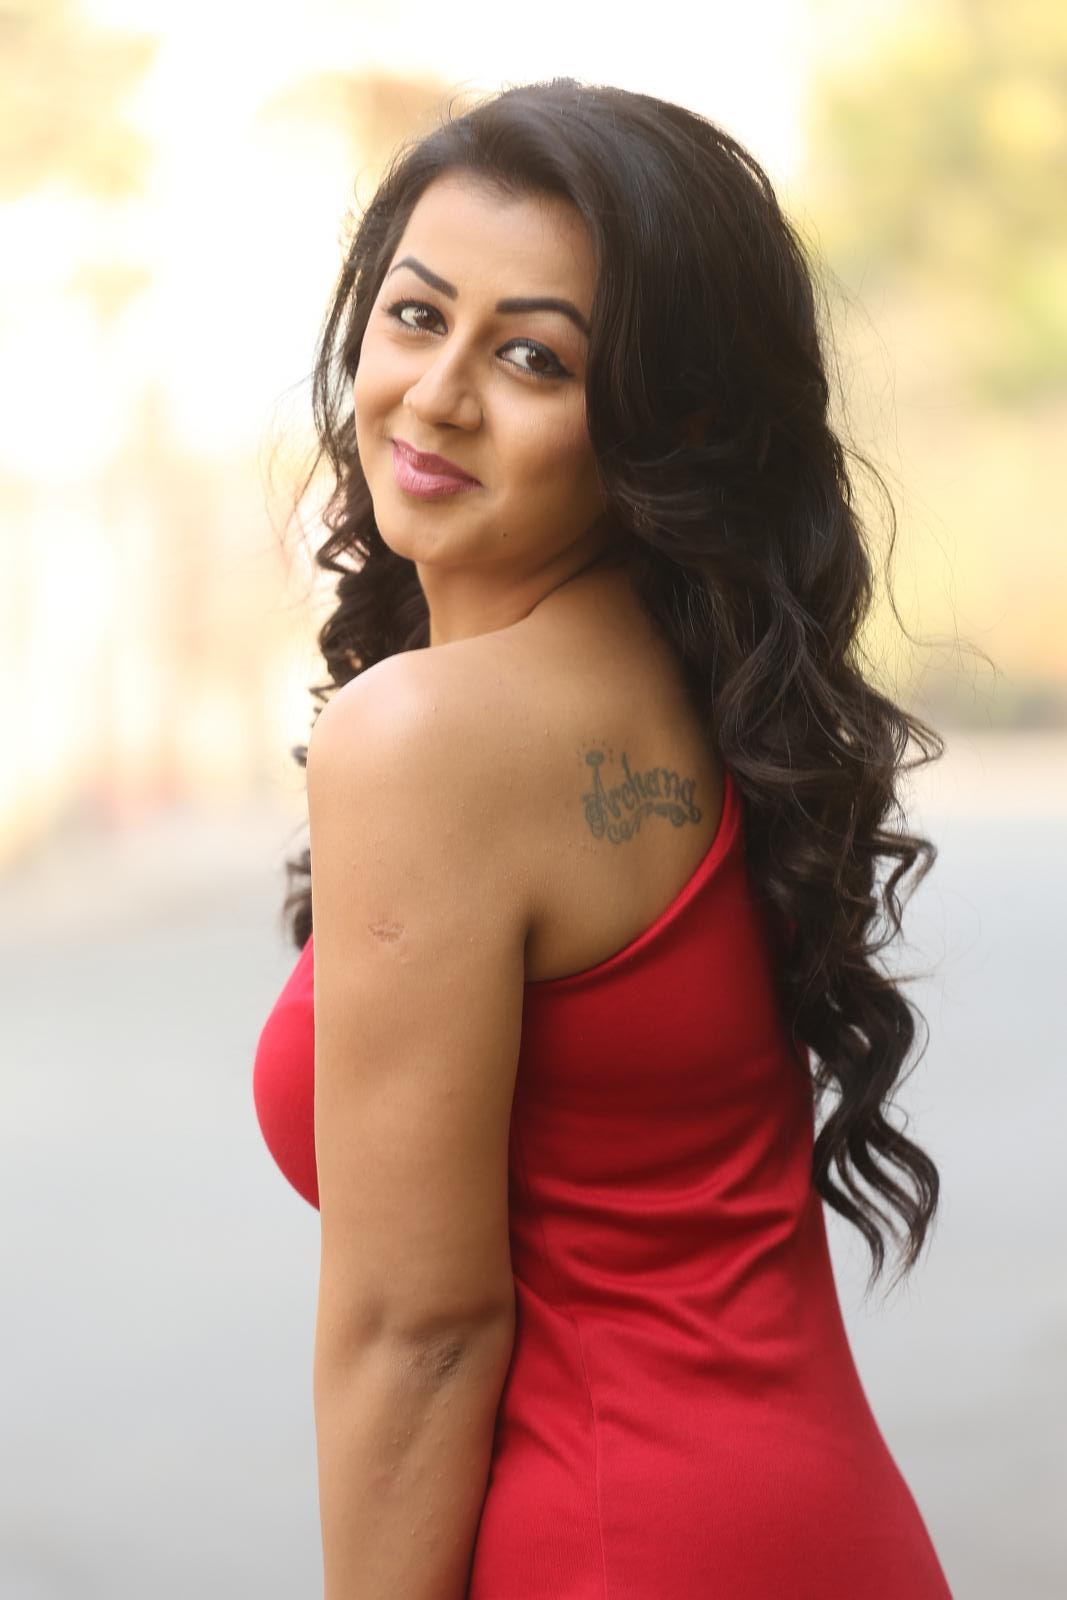 HQ Pics N Galleries !!: Actress Nikki Galarani New